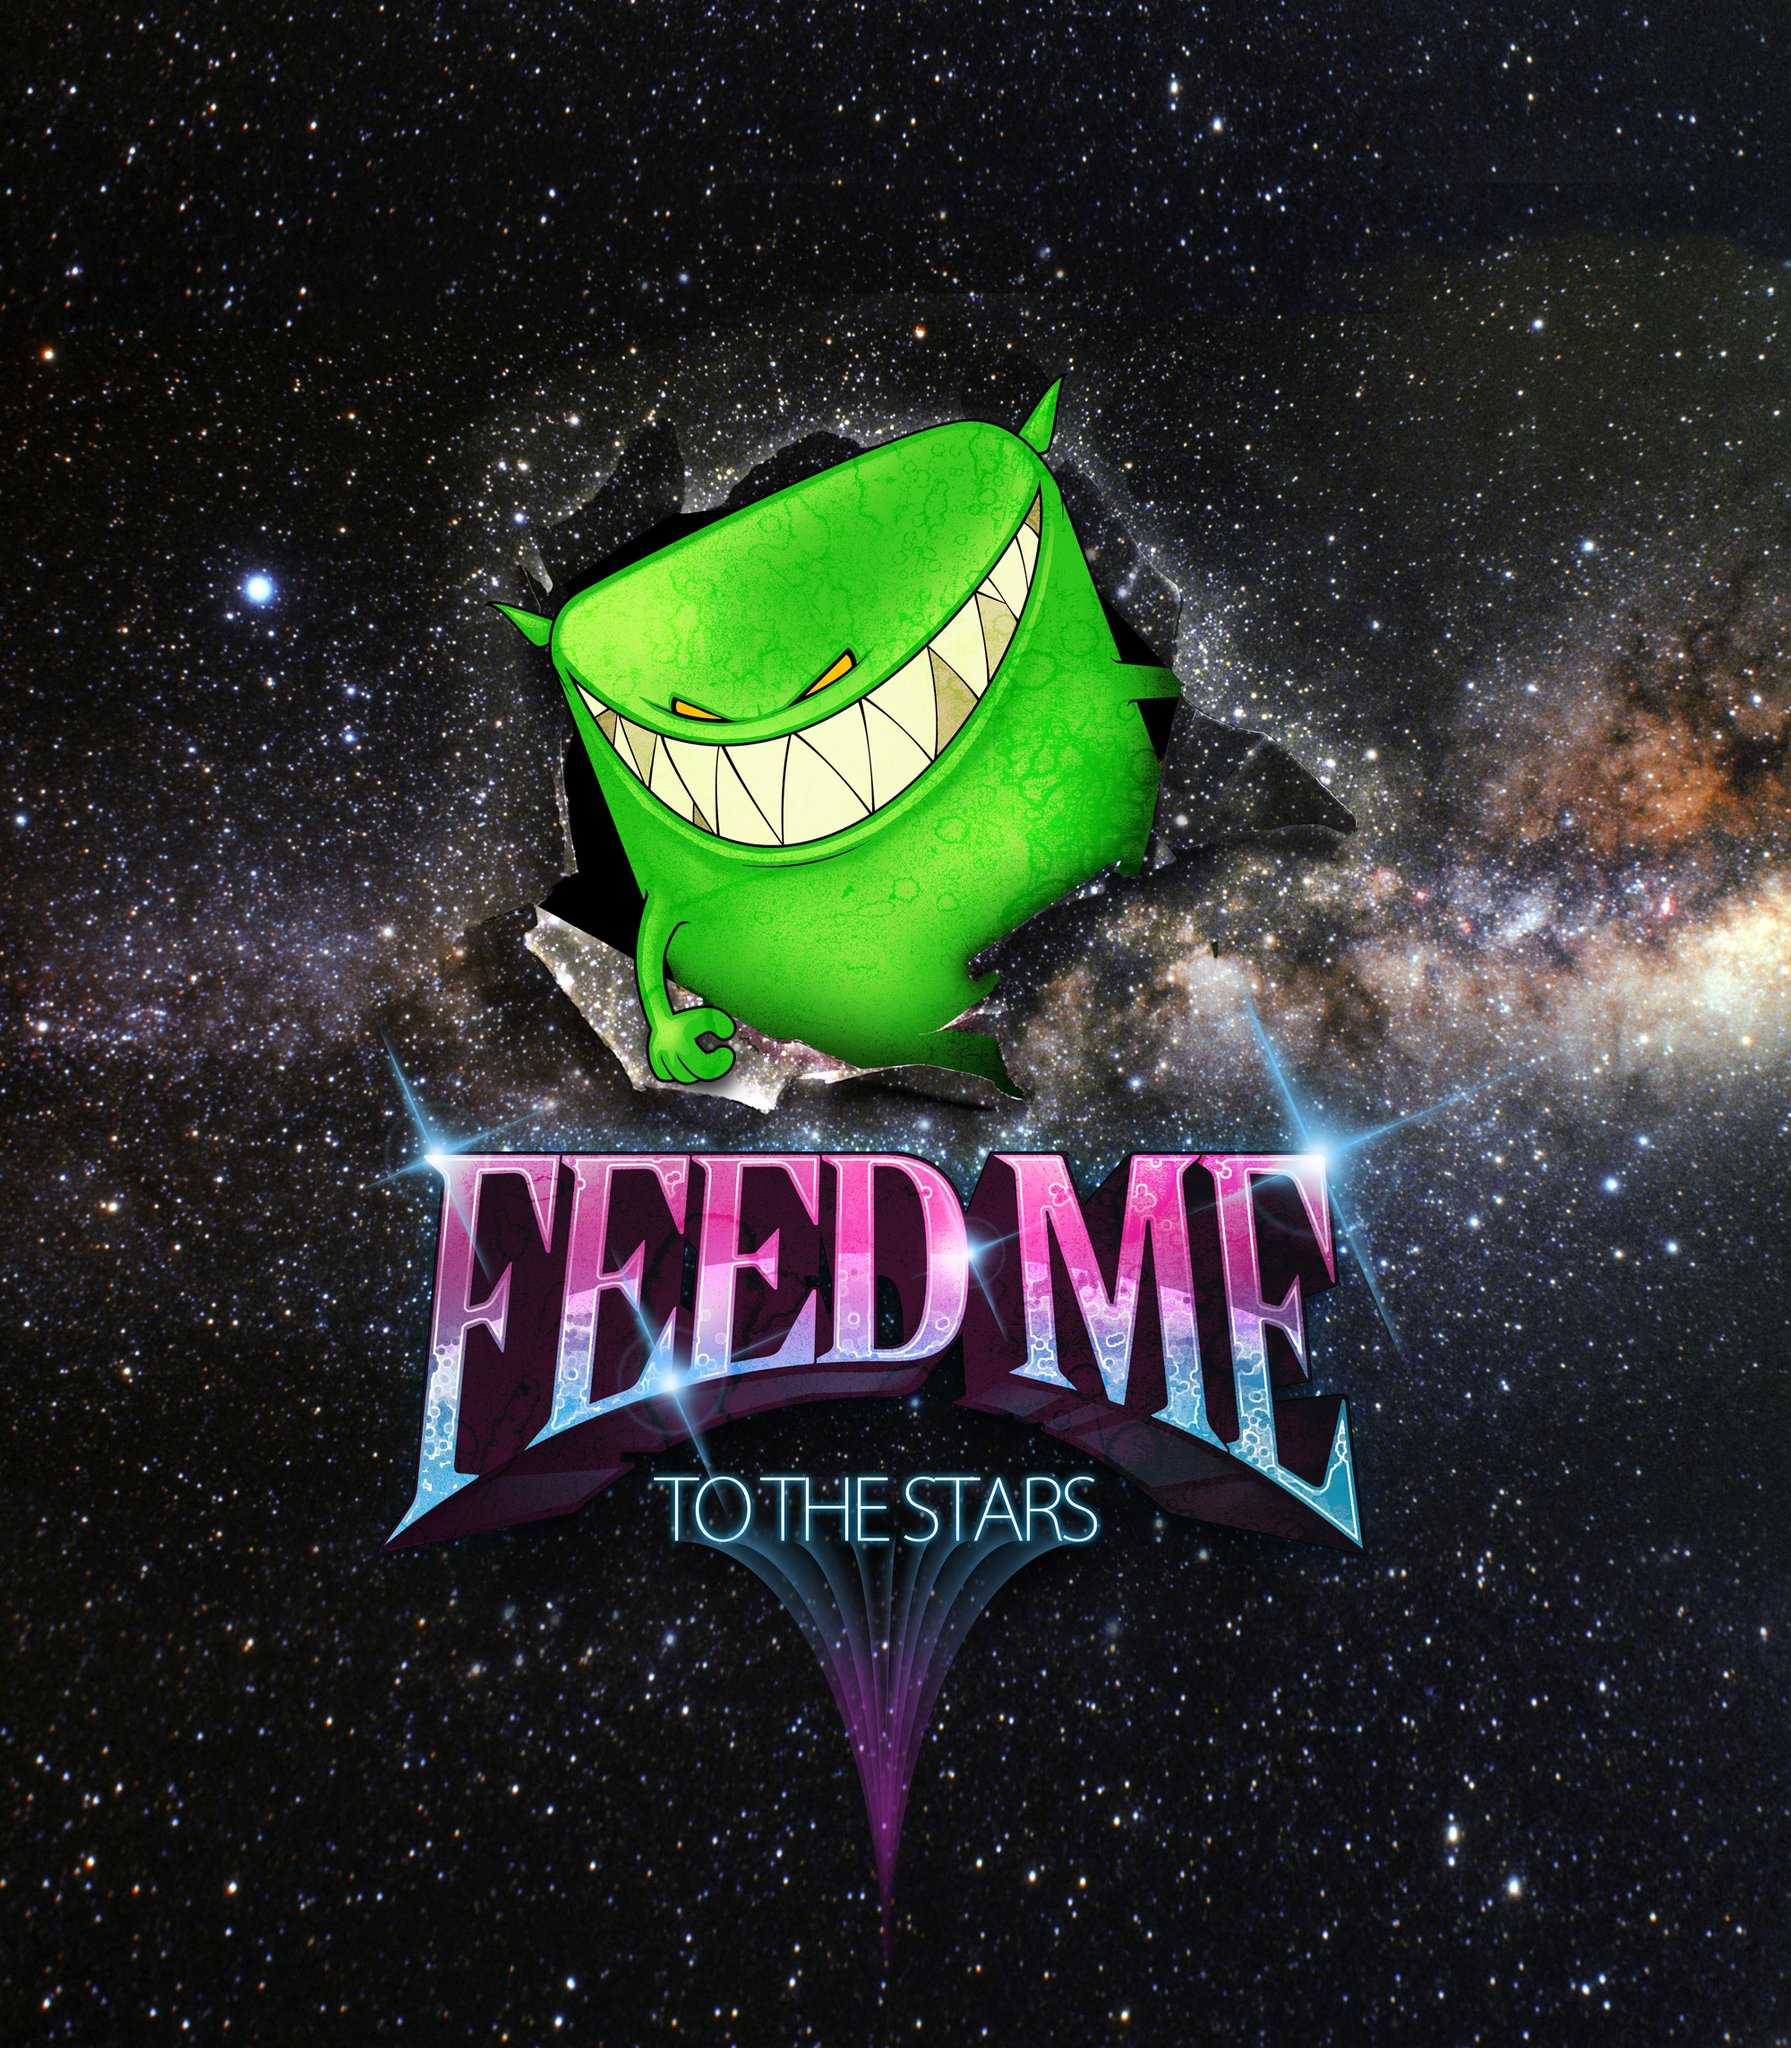 Feed Me - To The Stars